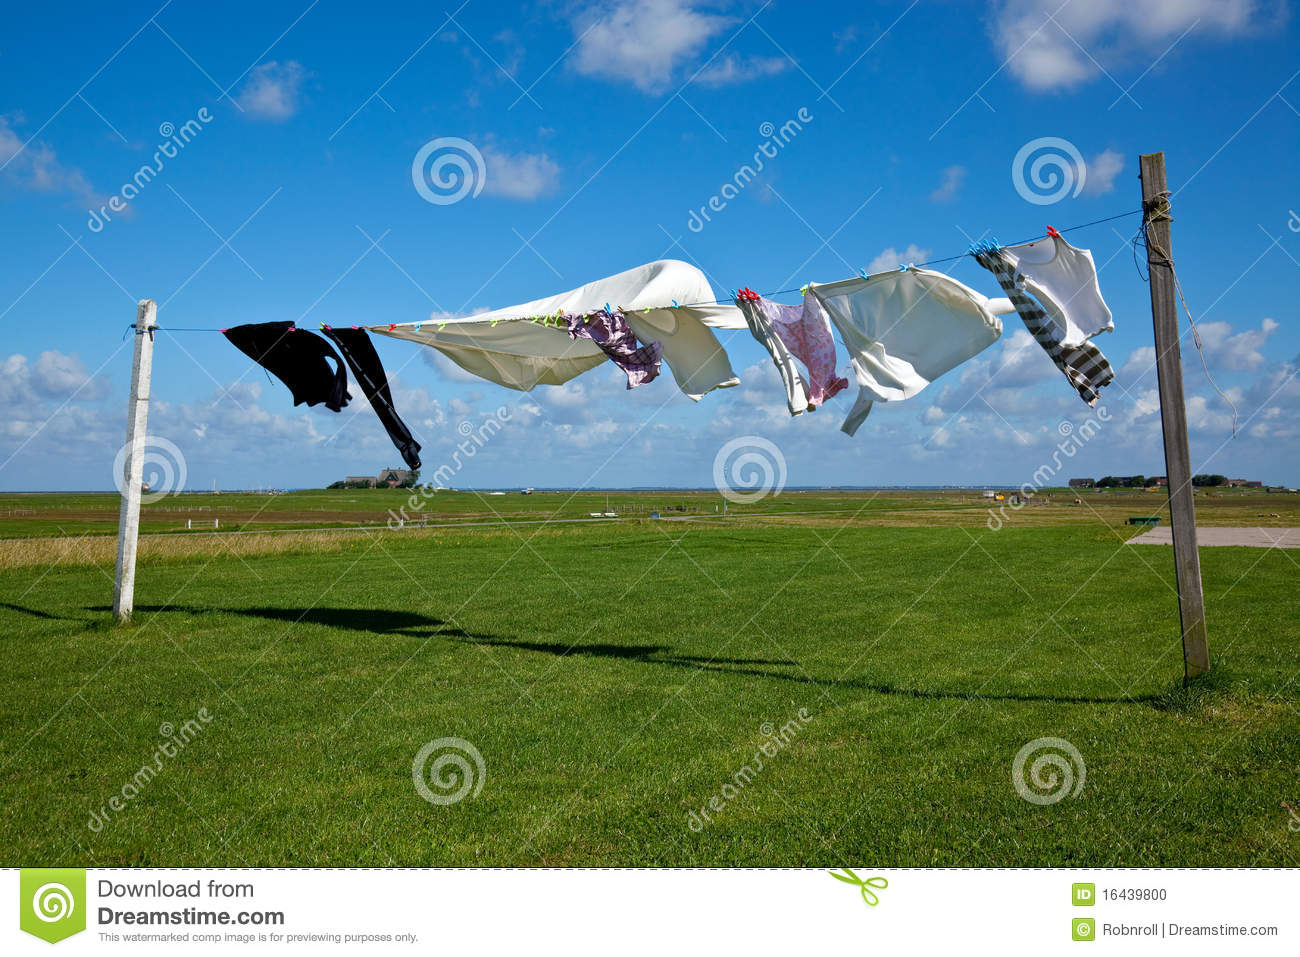 Laundry Drying On Clothes Line Against A Blue Sky Stock